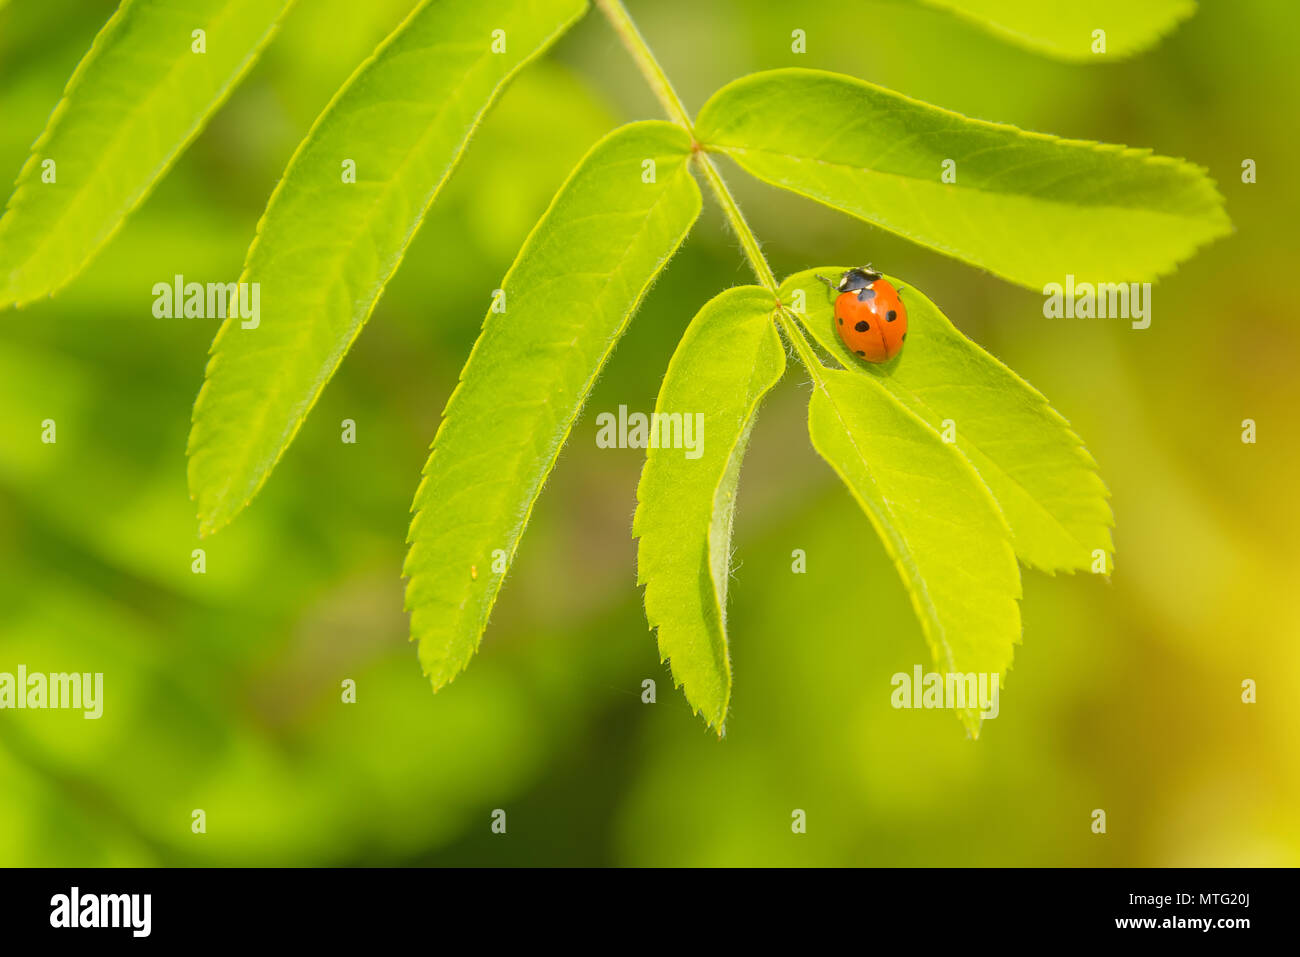 a small beetle crawling on a flower, a ladybug in the grass Stock Photo